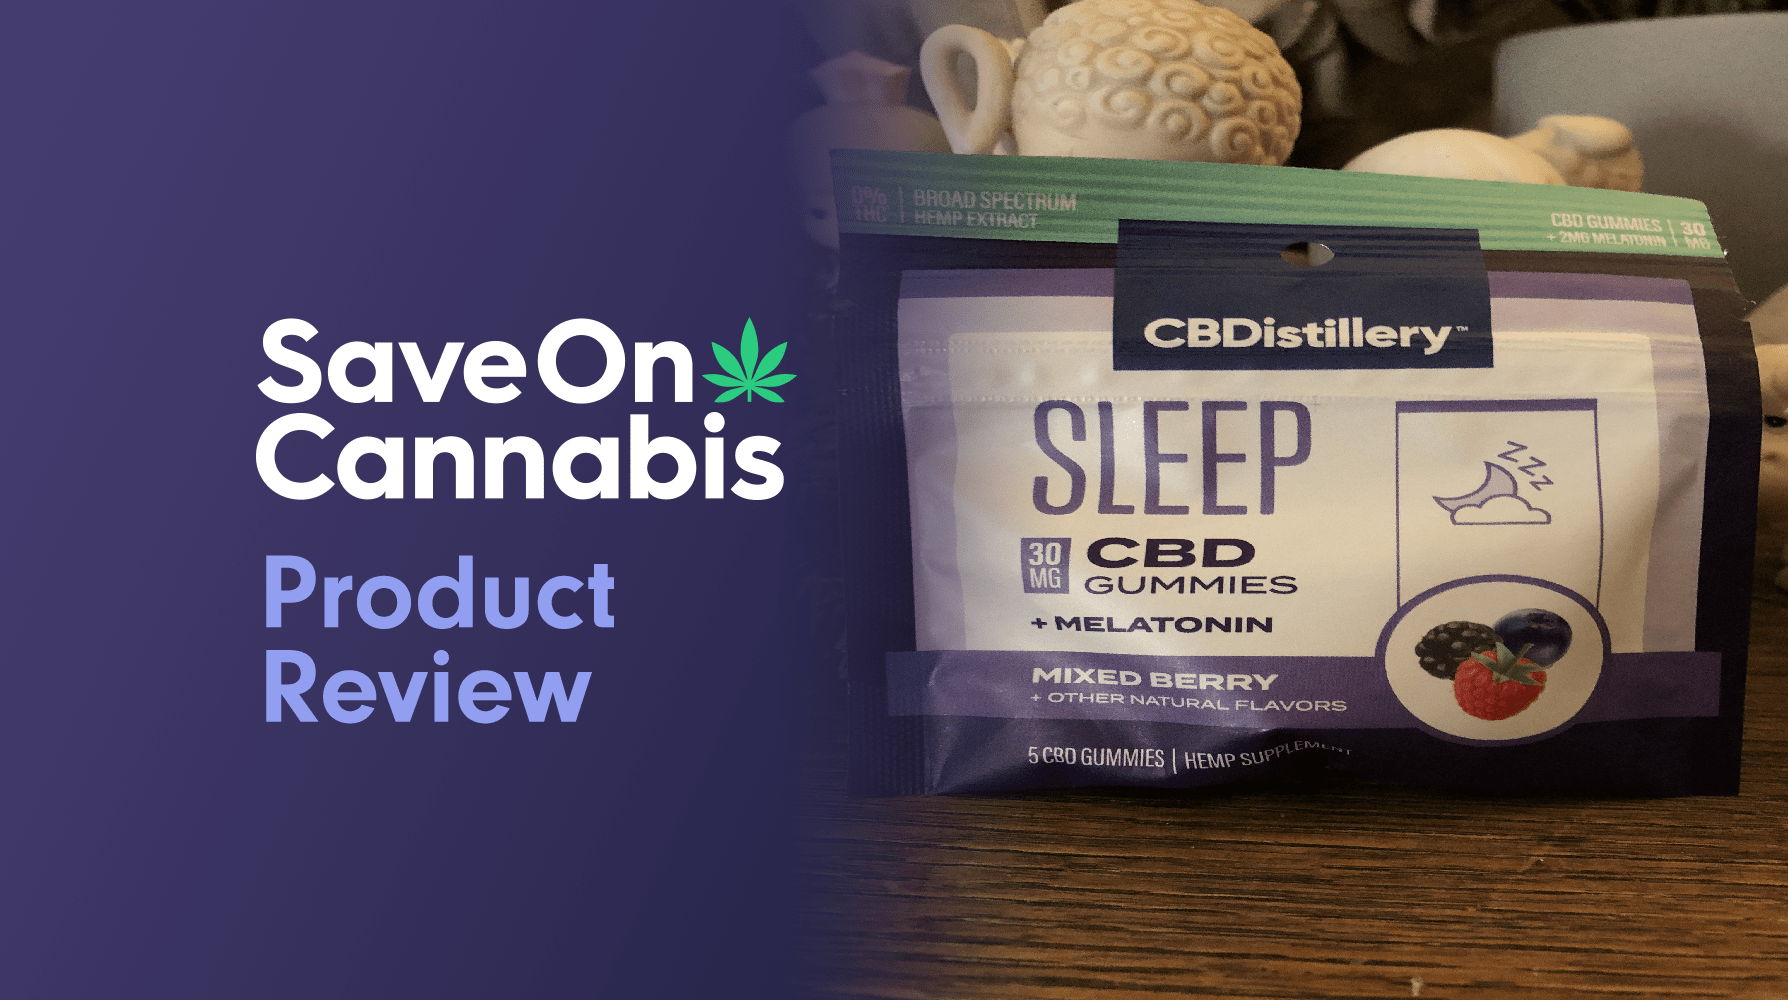 Cbdistillery Sleep Gummies Save On Cannabis Review Website